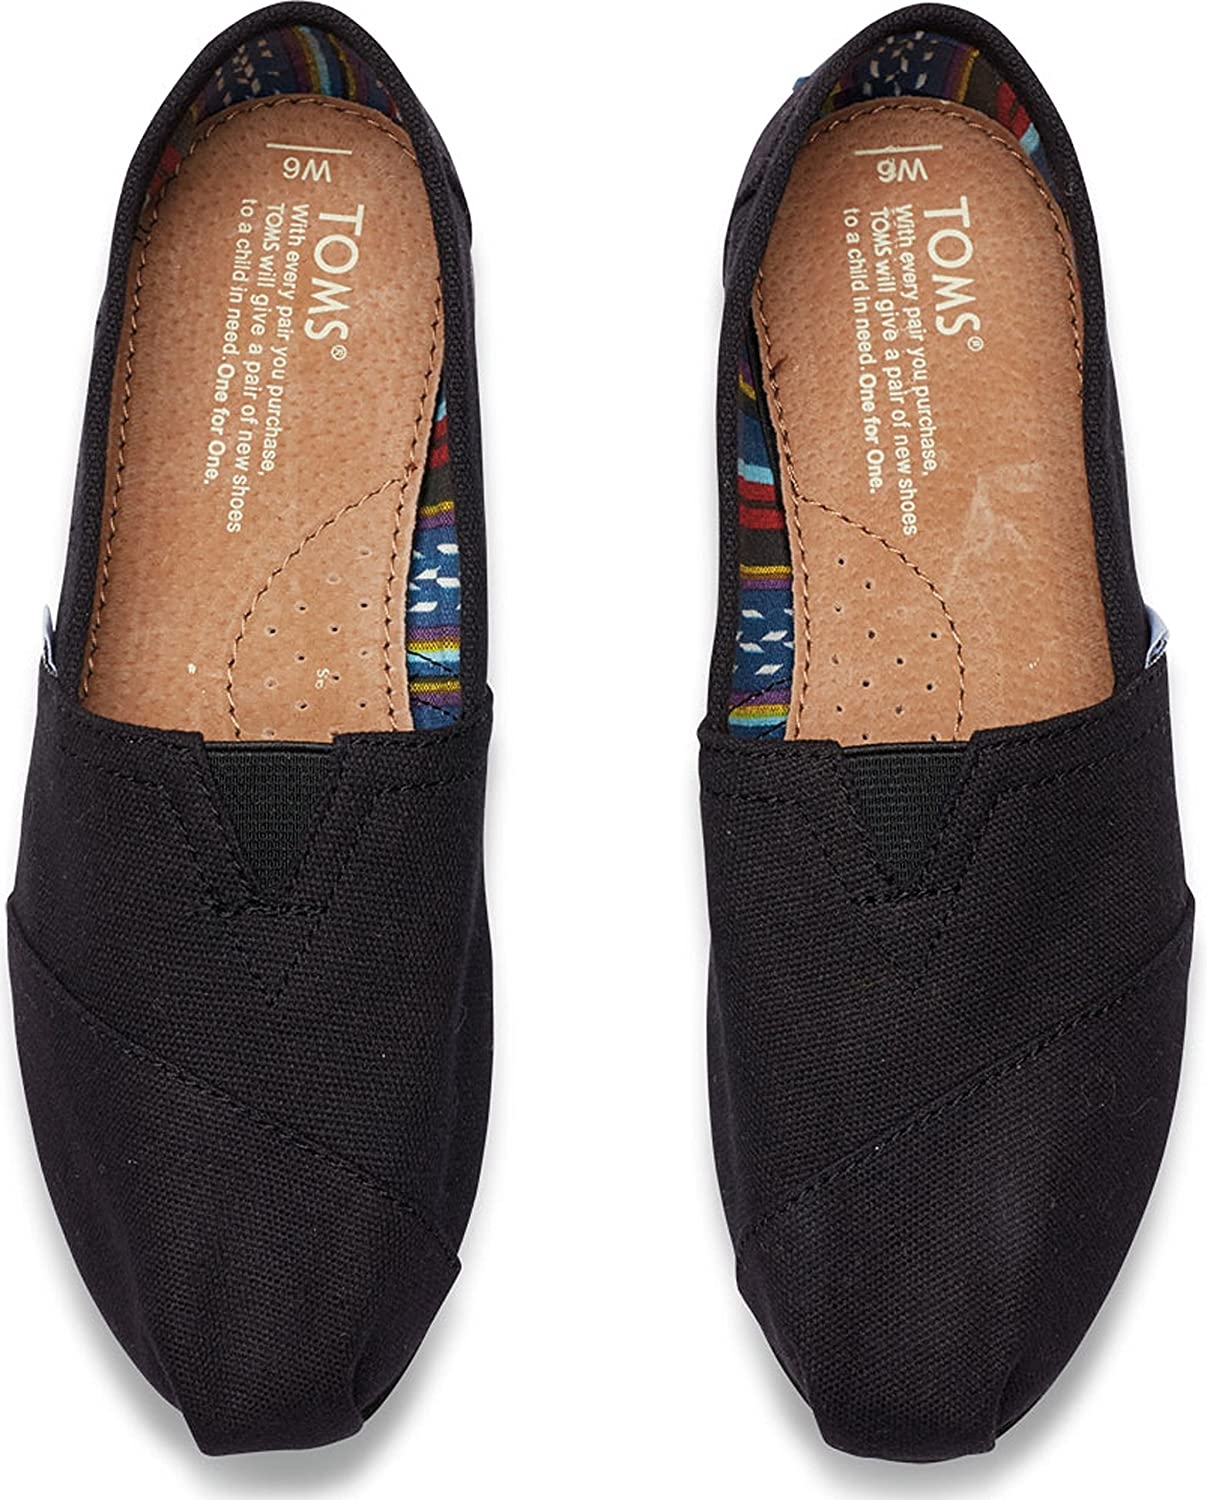 Amazon.com | TOMS Womens Classics Black/Black Canvas 10002472 Womens 5.5 | Loafers & Slip-Ons